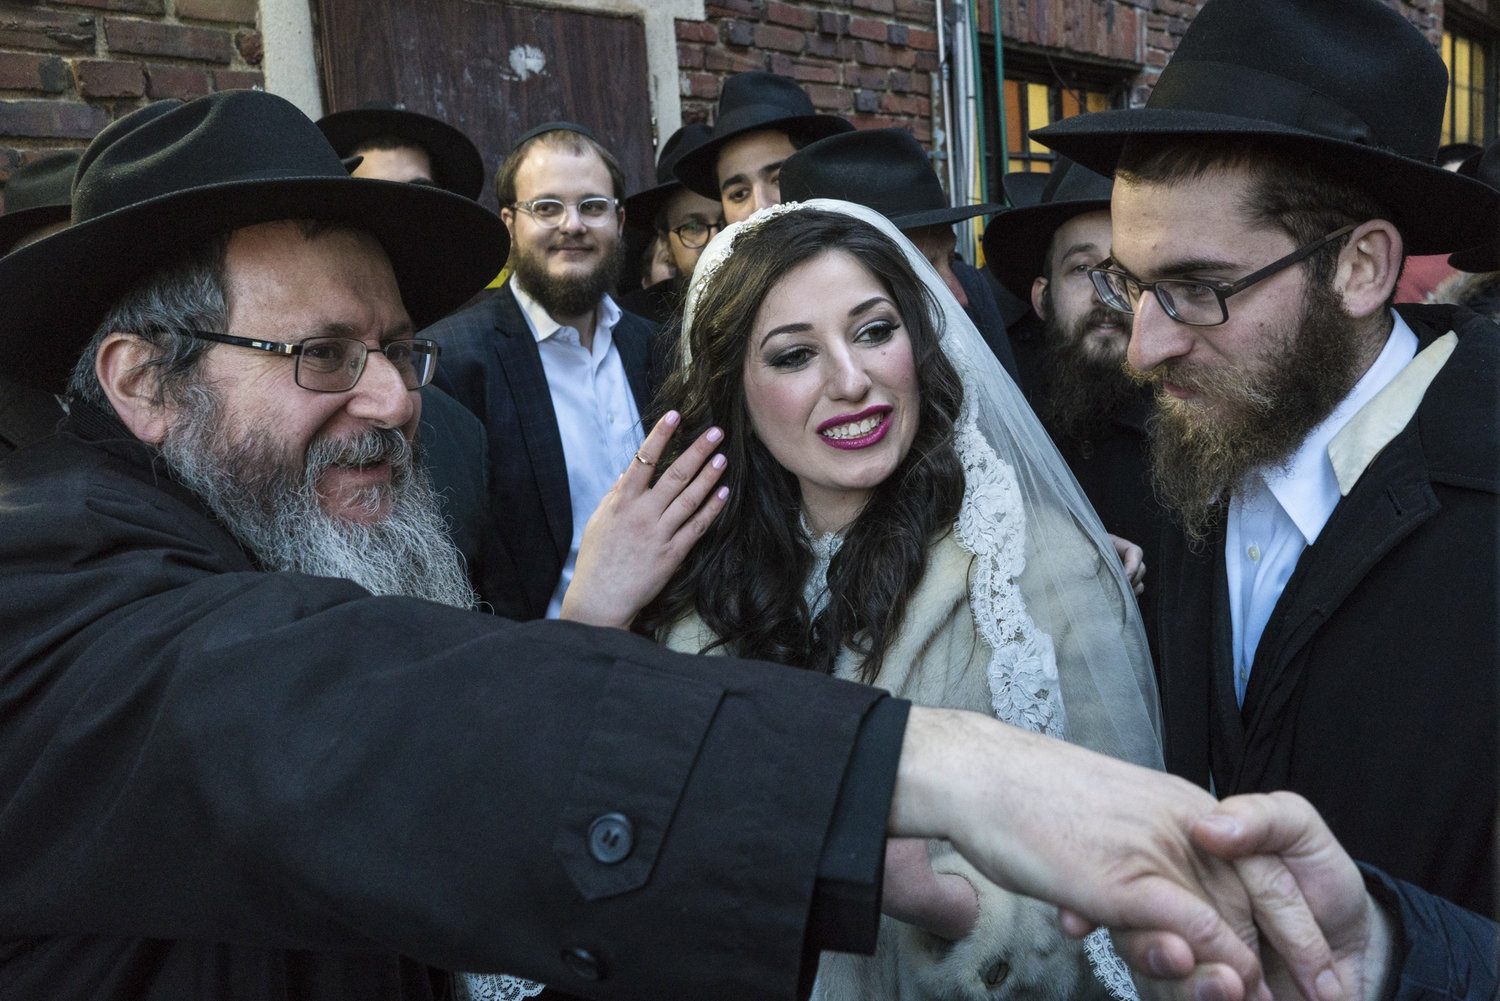 Chanale Gourarie (middle) and Zalman Rachik (right) greet relatives after being married under the Huppah at 770 Eastern Parkway, the Chabad Lubavitch headquarters in Crown Heights, Brooklyn. Zalman 22 and Chanale 20, met through mutual acquantinces in the Chabad Lubavitch community.